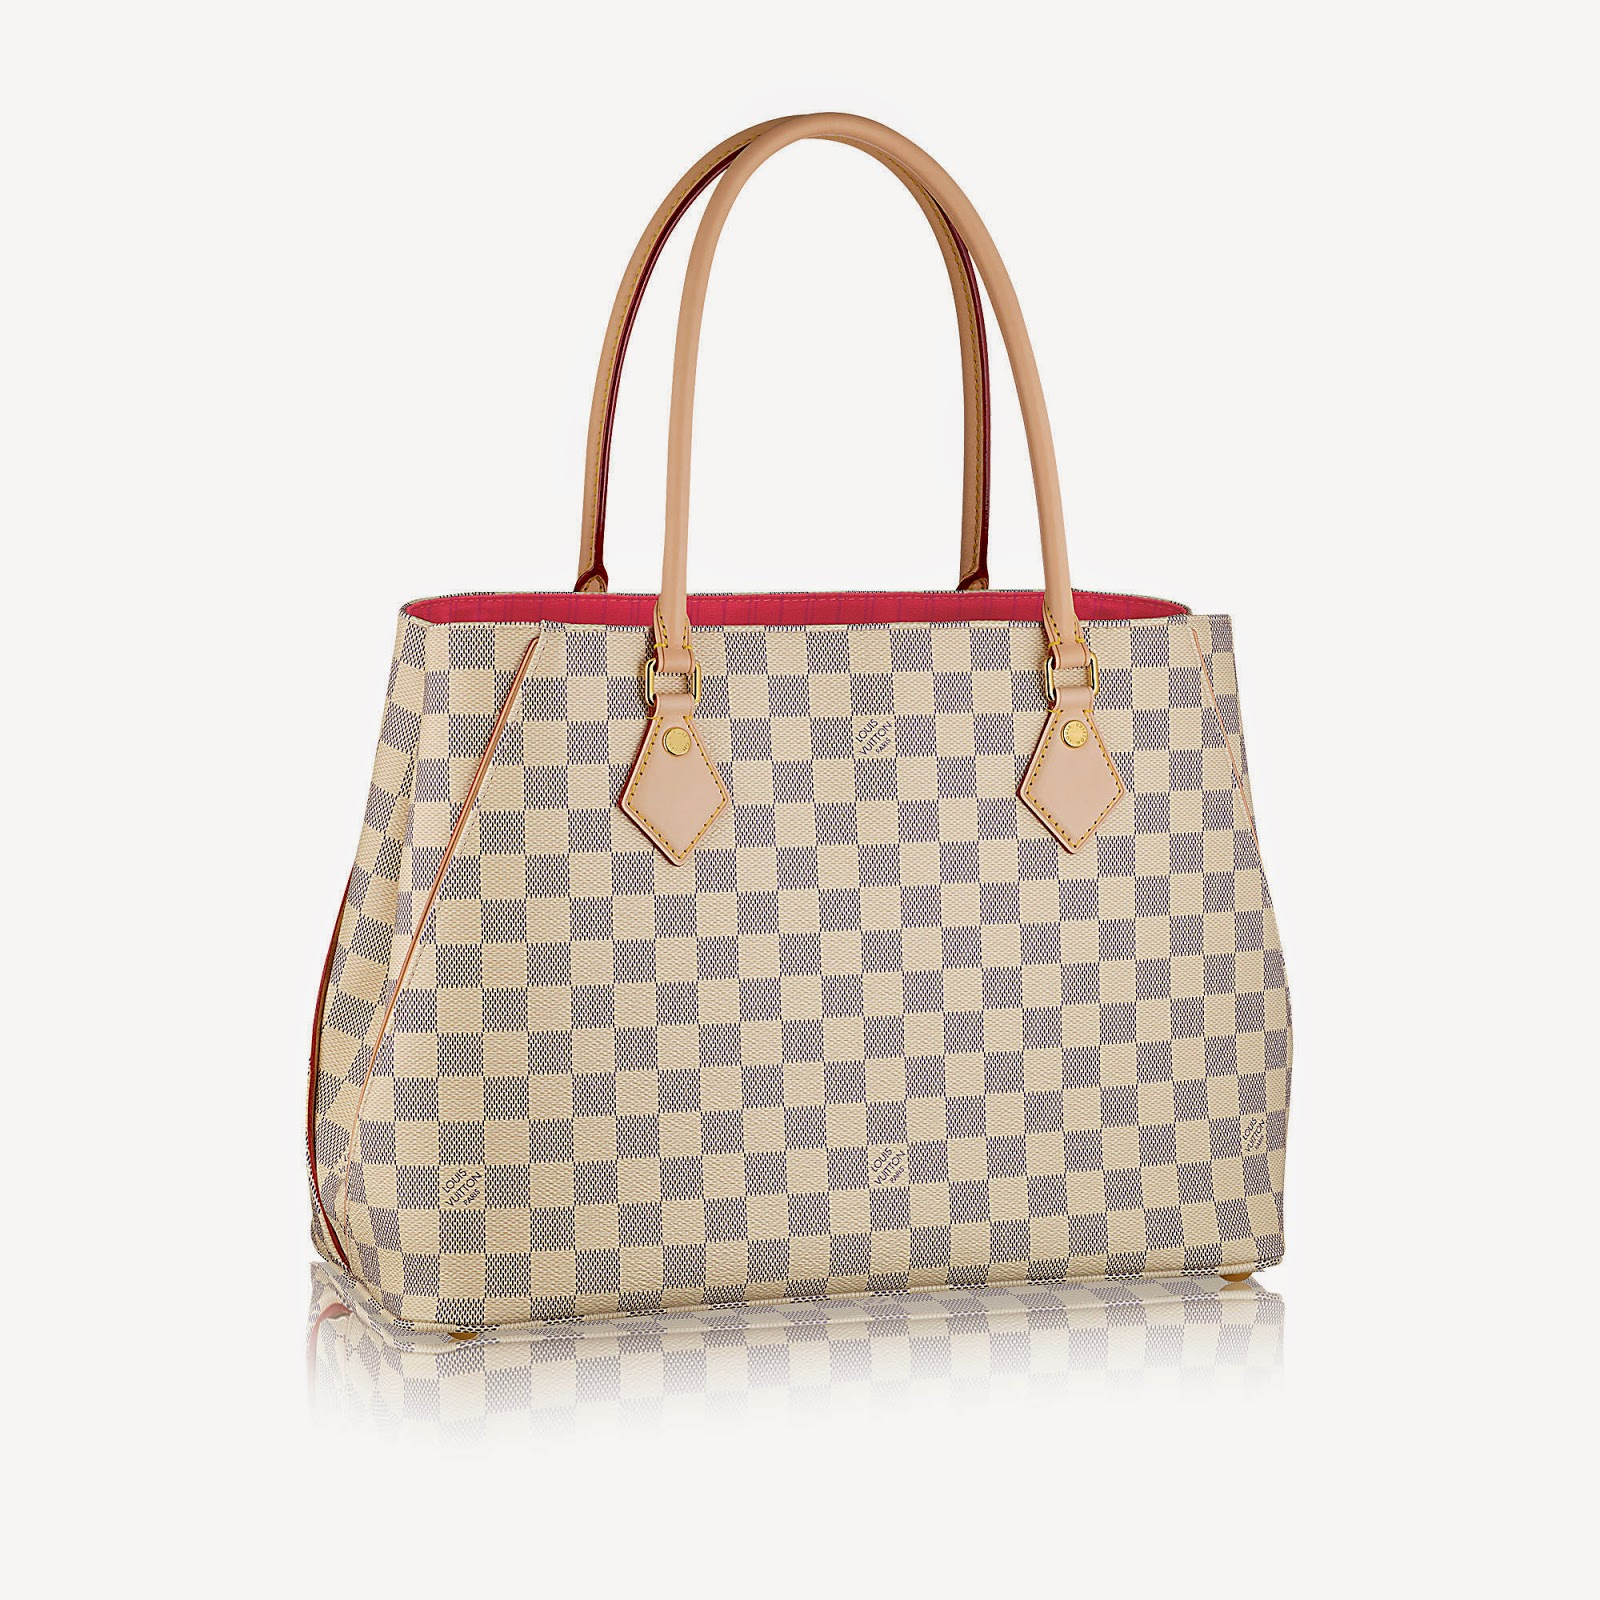 Louis Vuitton Paris Buy Online Confederated Tribes Of The